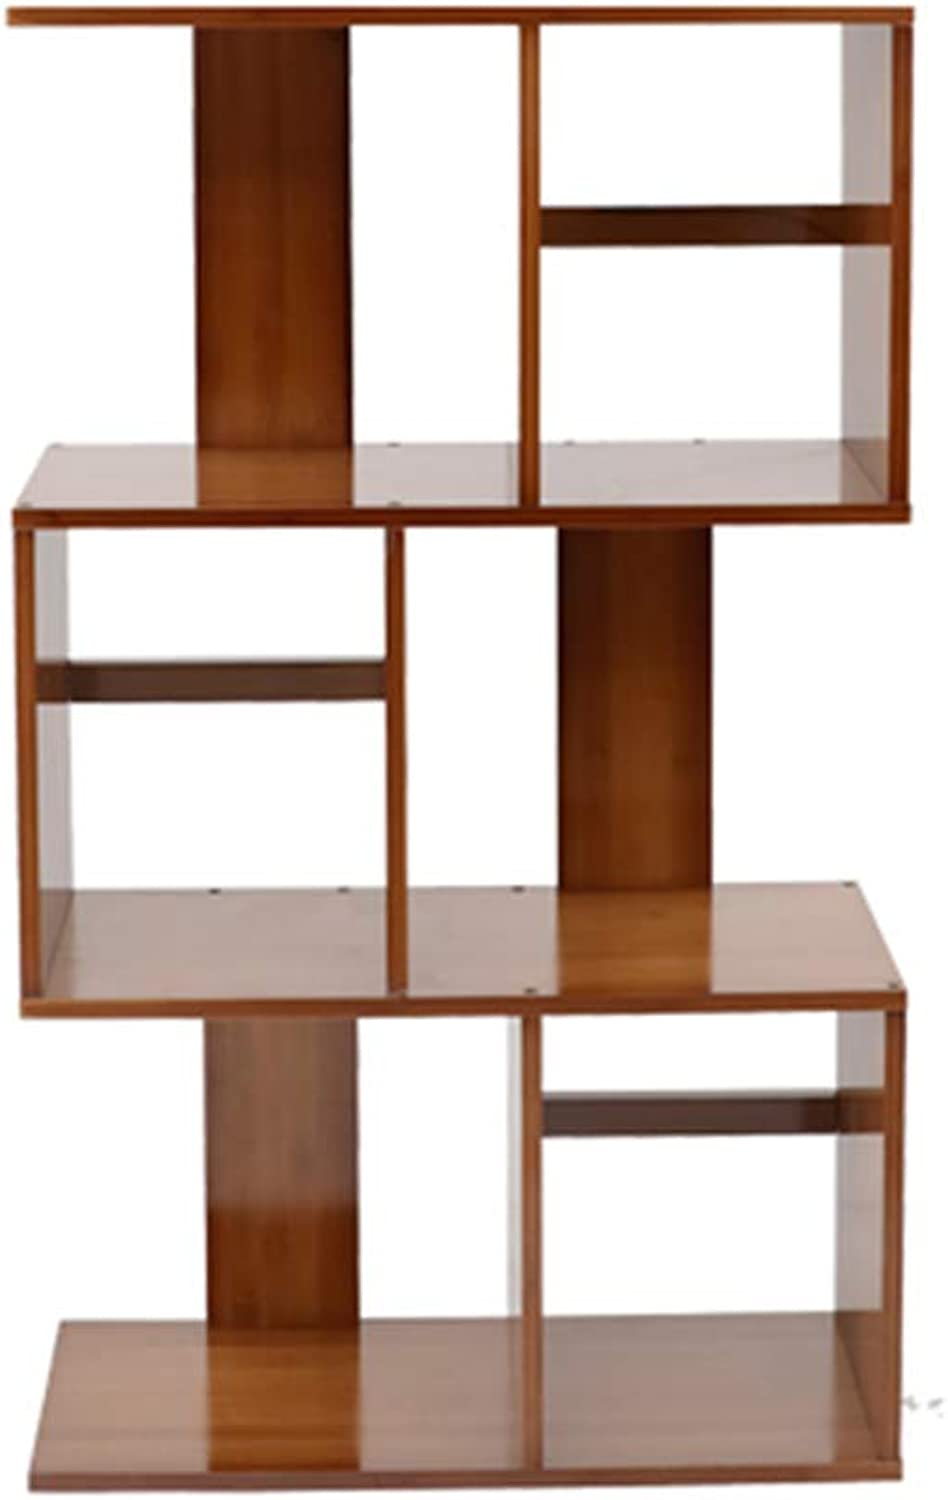 Bookcase Simple Shelf Living Room Bamboo Bookcase Creative Study Small Bookshelf Home Storage Rack (color   Brown, Size   60x24.5x102cm)